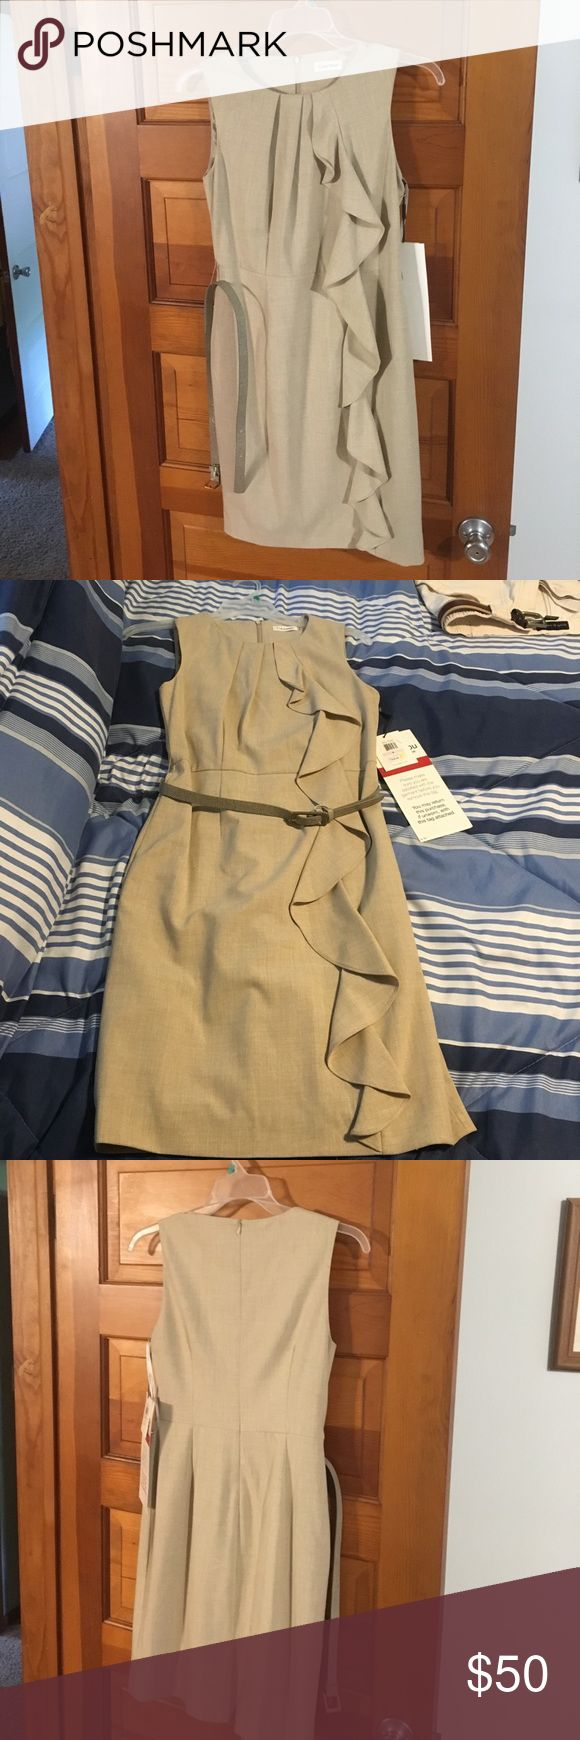 New Calvin Klein Sandy dress This dress is brand new suggested retail price 128. Size 6 called sand. Beautiful ruffle up the left-hand side comes with the leather belt . Has a zipper in the back & slit at hem. It is lined @& in perfect condition😇 Calvin Klein Dresses Midi